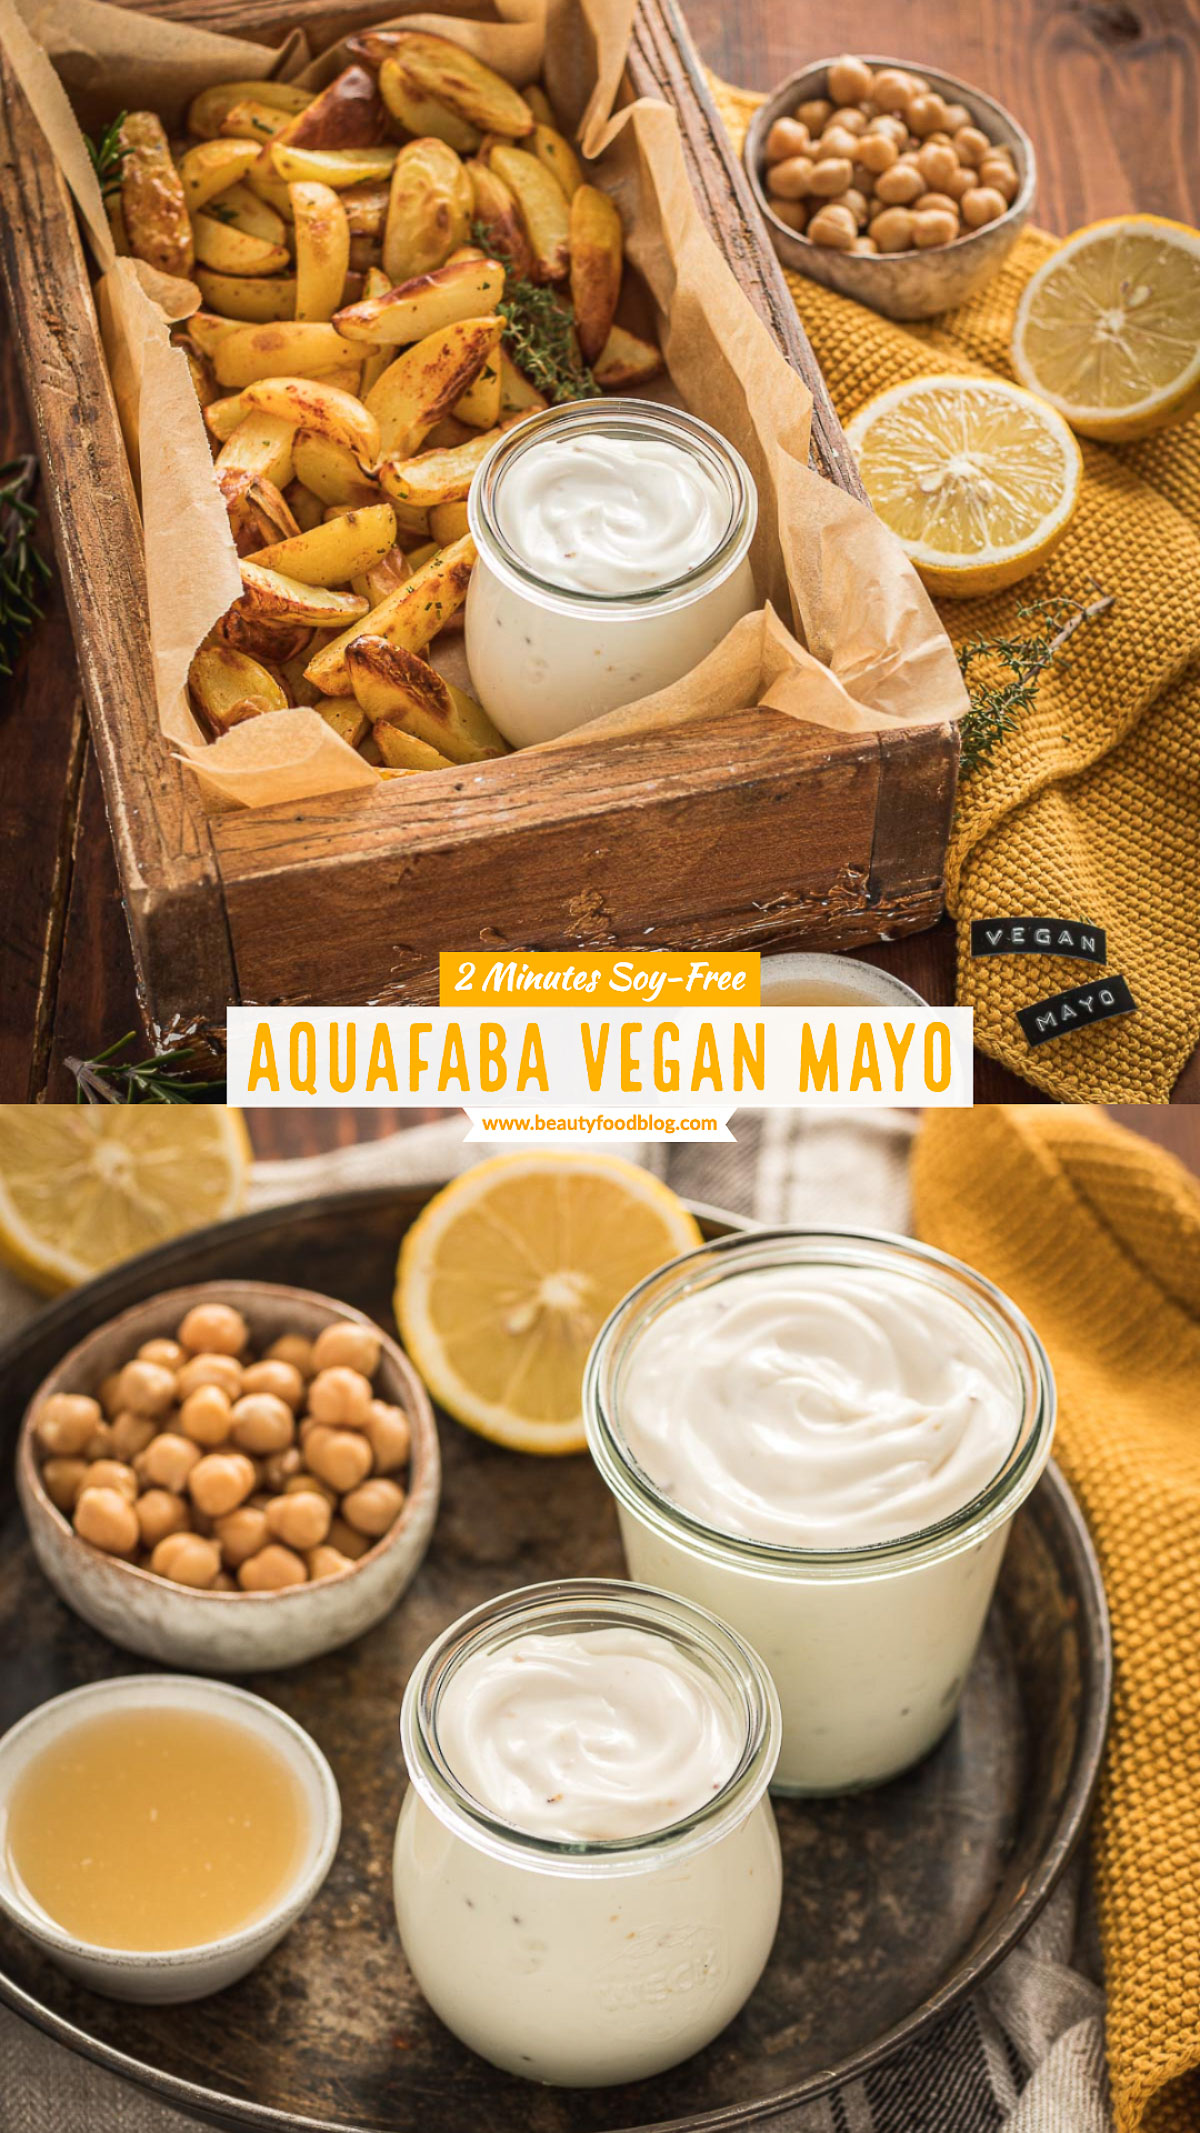 maionese vegan senza uova di aquafaba senza soia 2 minuti con patate al forno easy vegan mayonnaise with aquafaba soy-free mayo ready in 2 minutes with baked potatoes